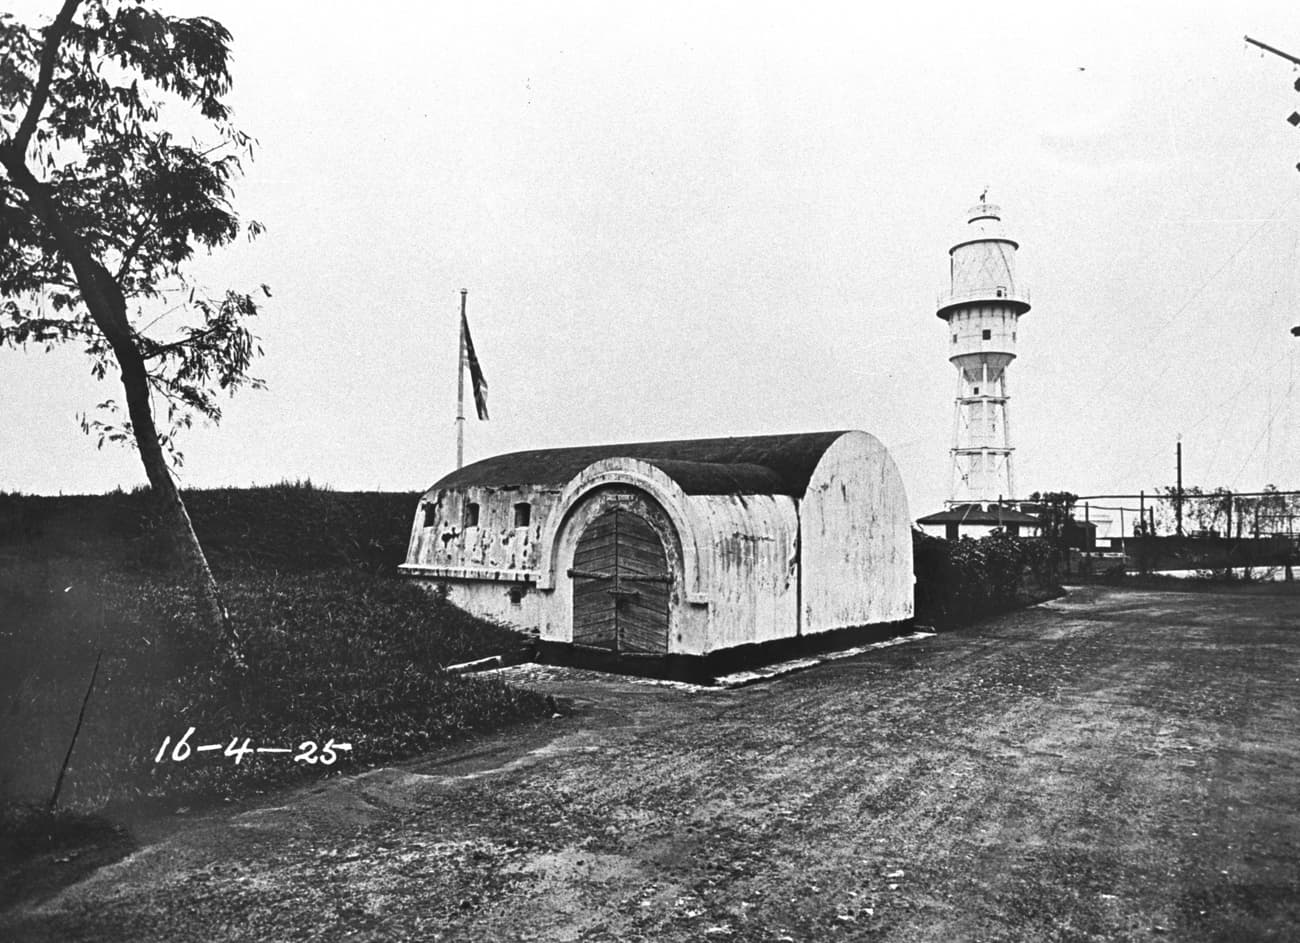 Bunker at Fort Canning, 1925